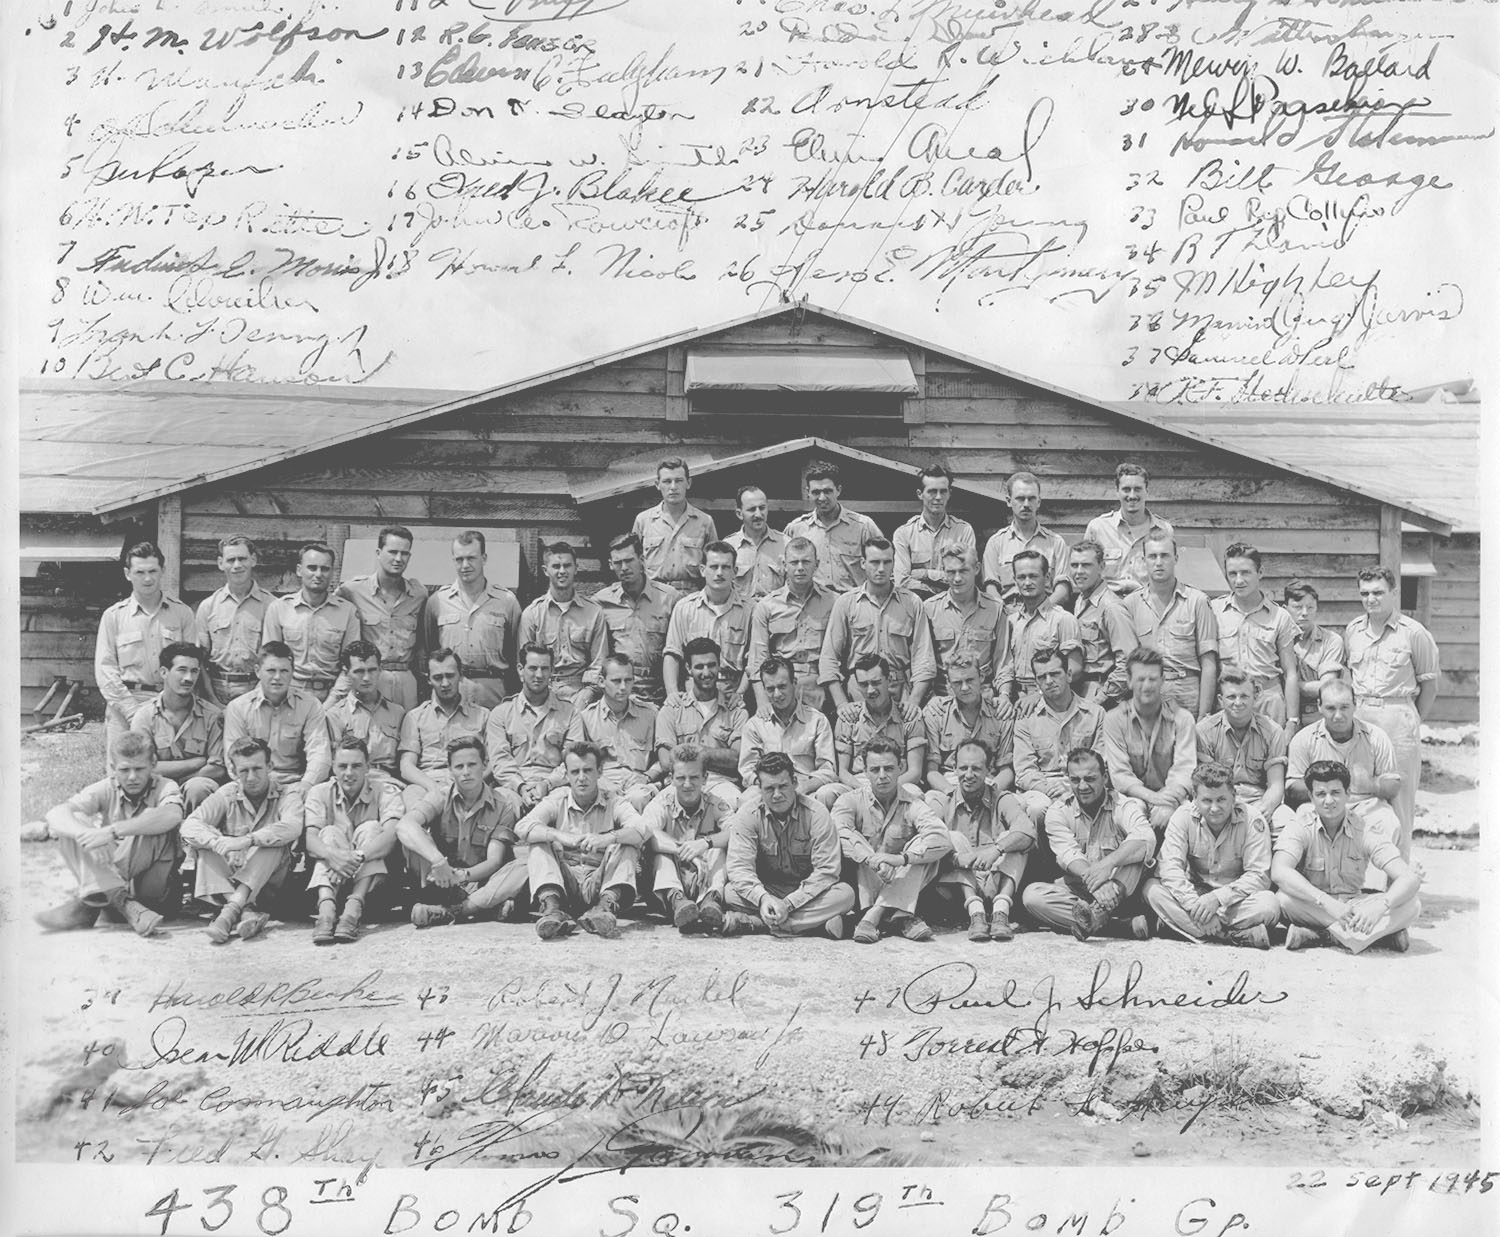 The Officers of the 438th Squadron in front of their officers club on Okinawa in September 1945